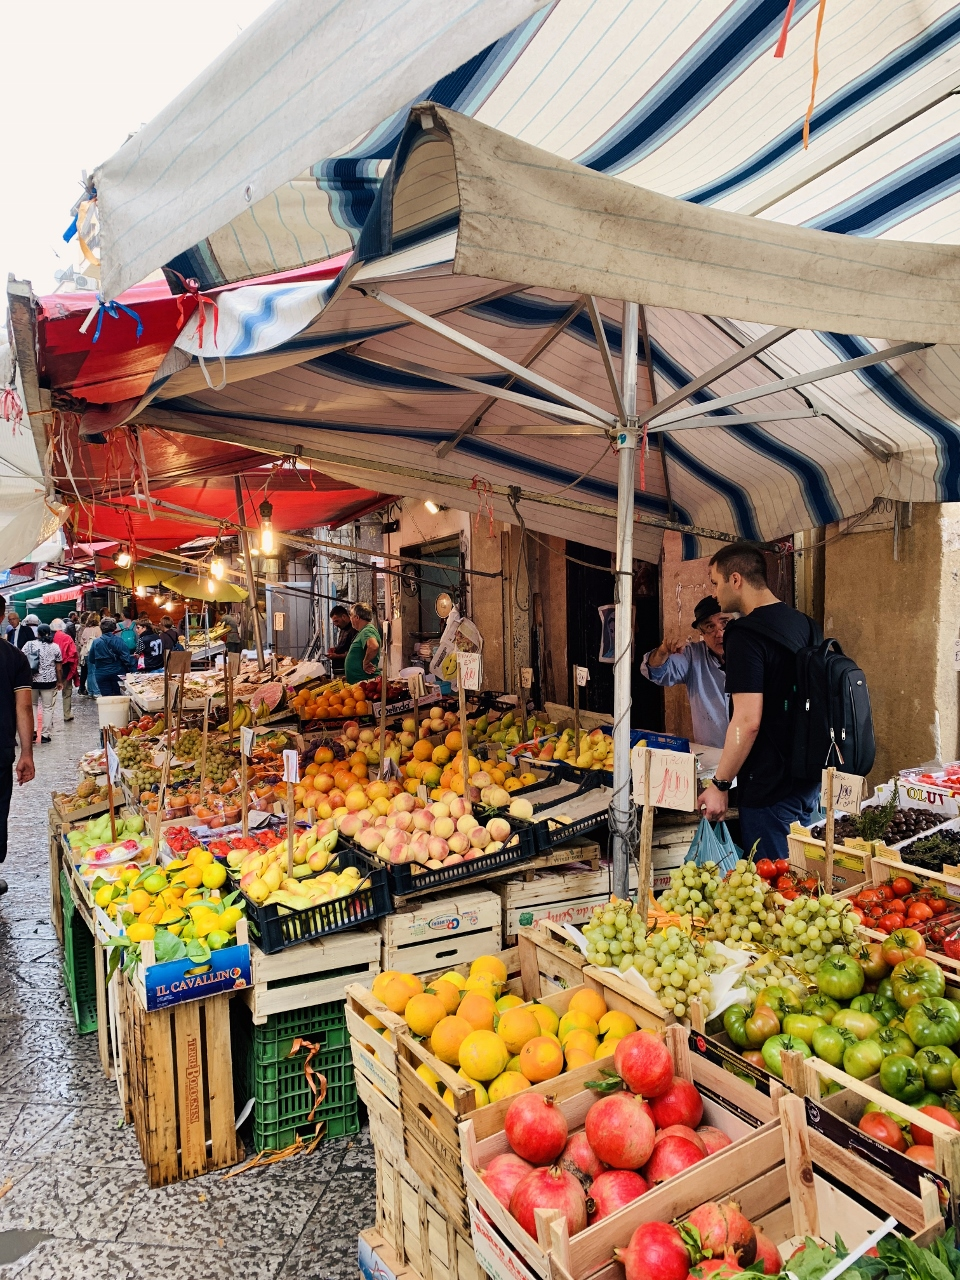 Travels to Sicily – Palermo & Monreale (Part 3 of 3) Image 21